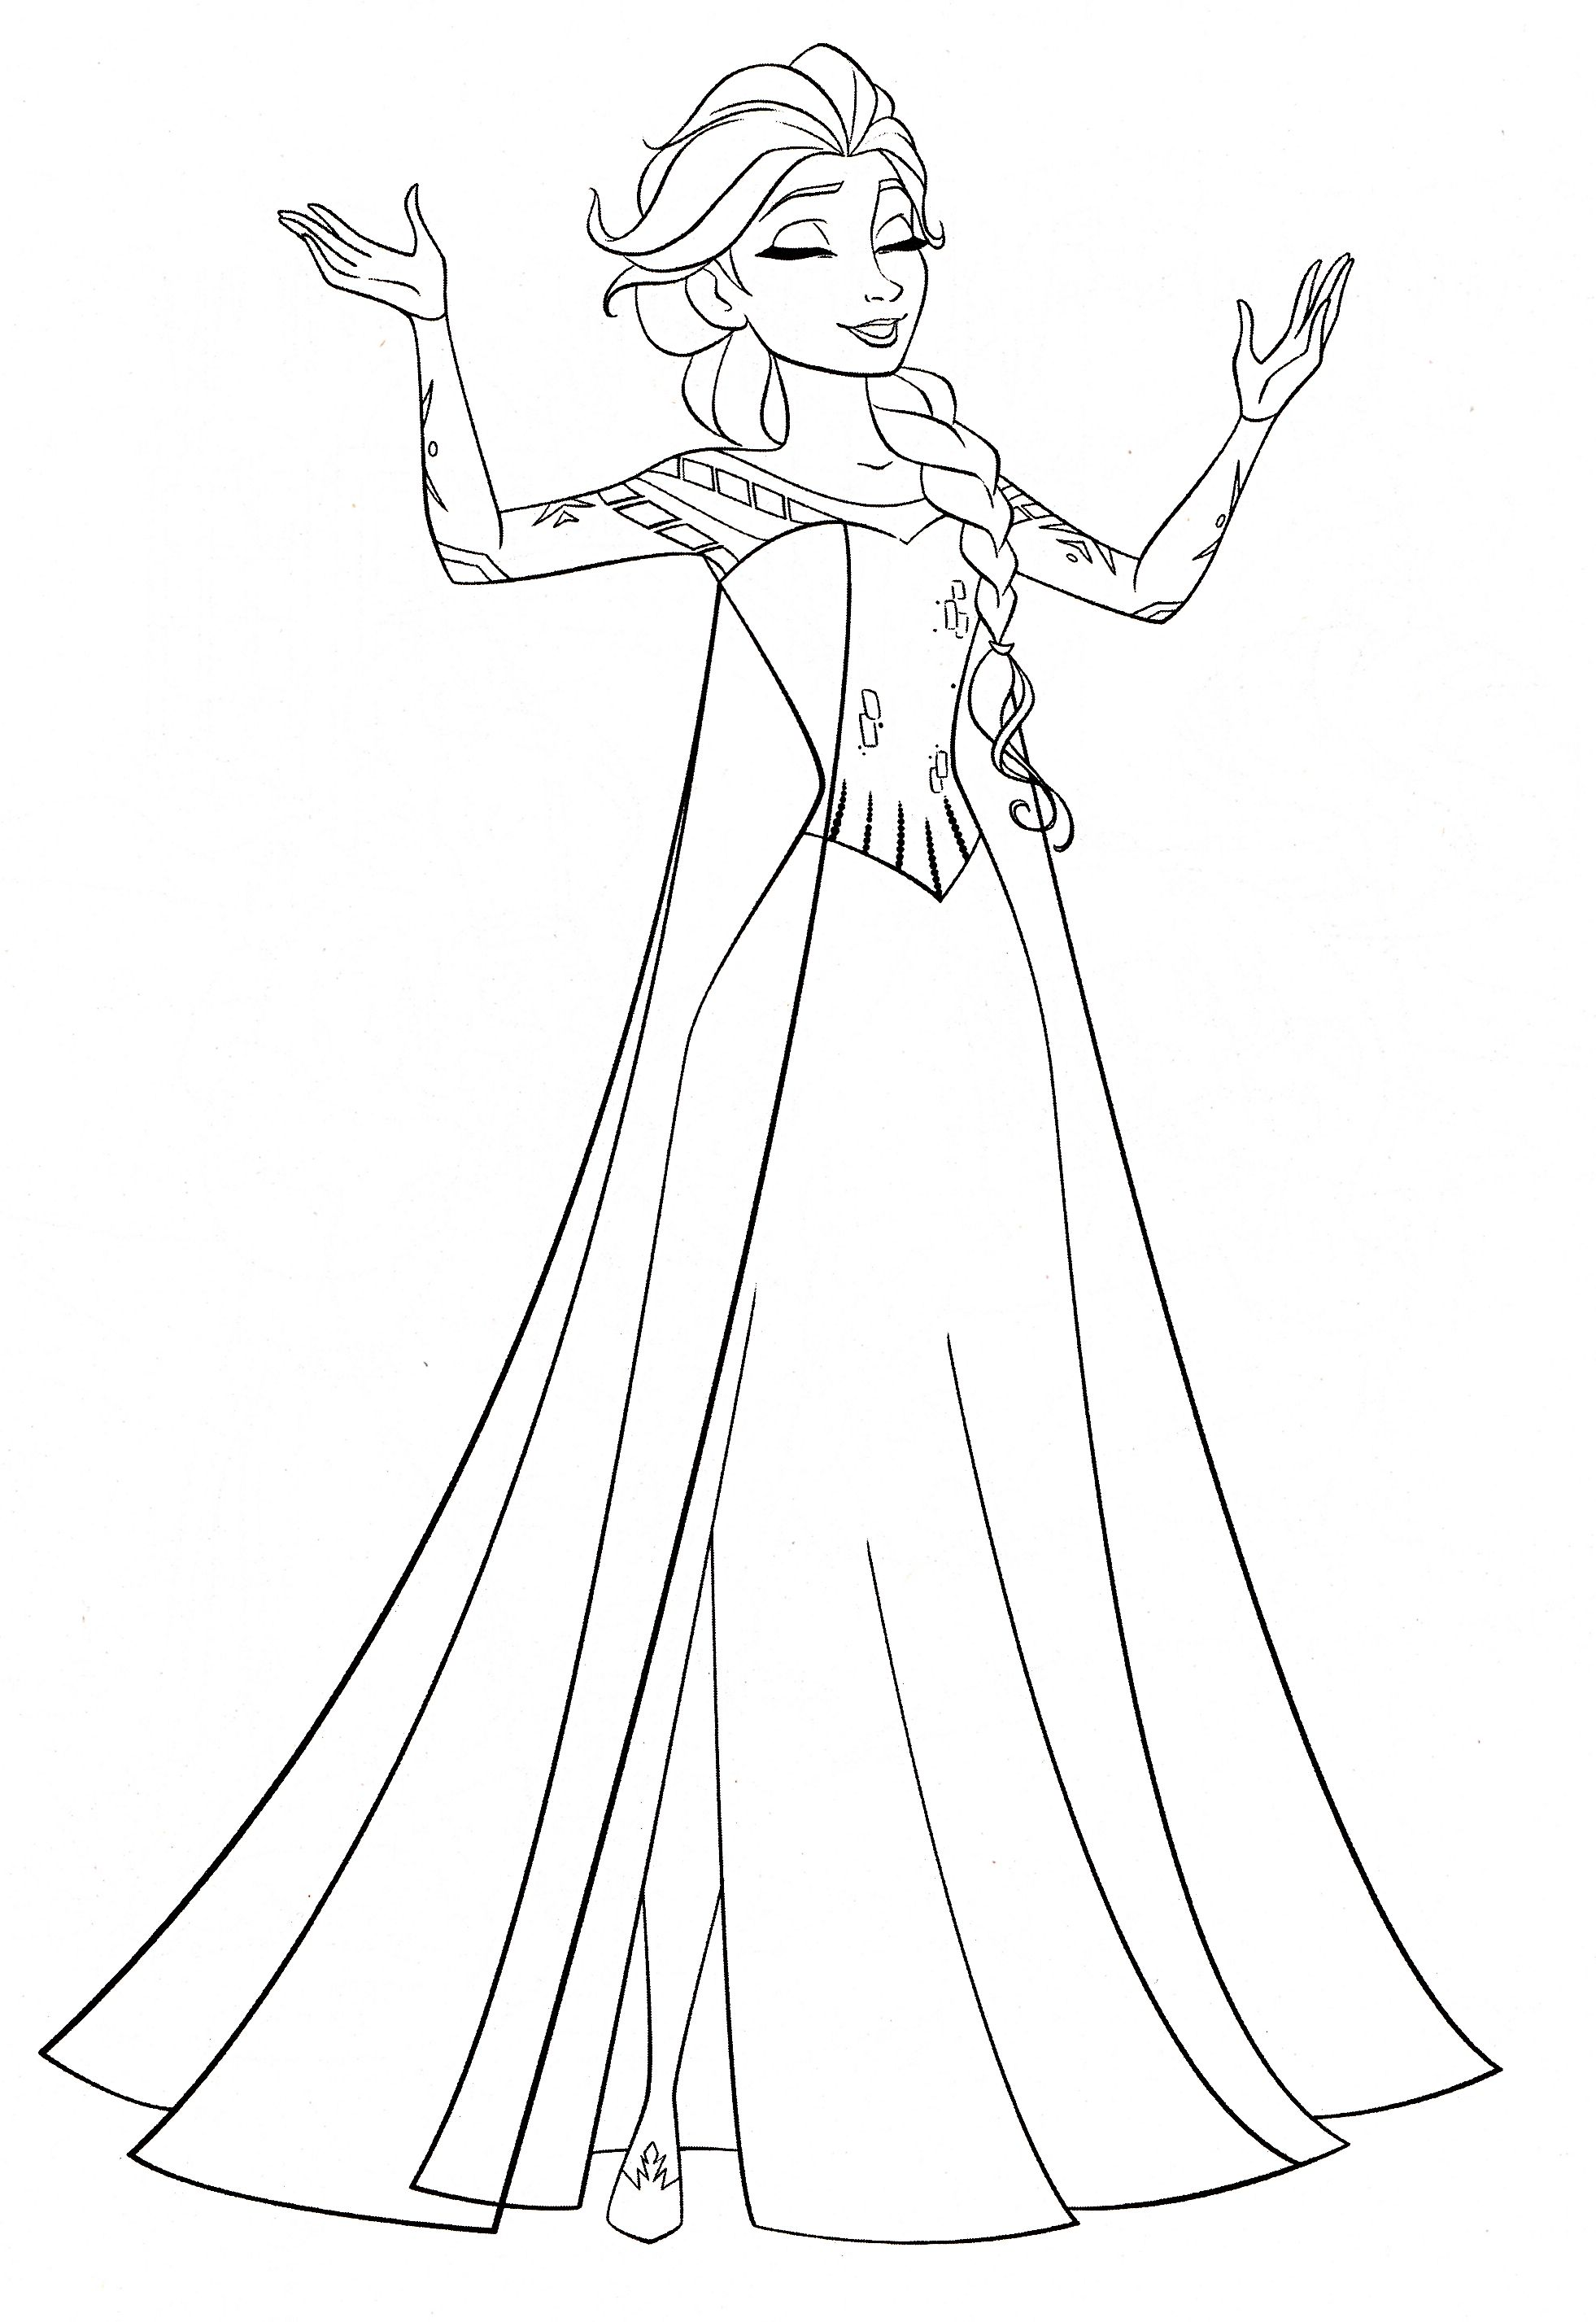 Elsa Die Eiskönigin Ausmalbilder : Download Frozen Coloring Pages Disney Princesses Pinterest